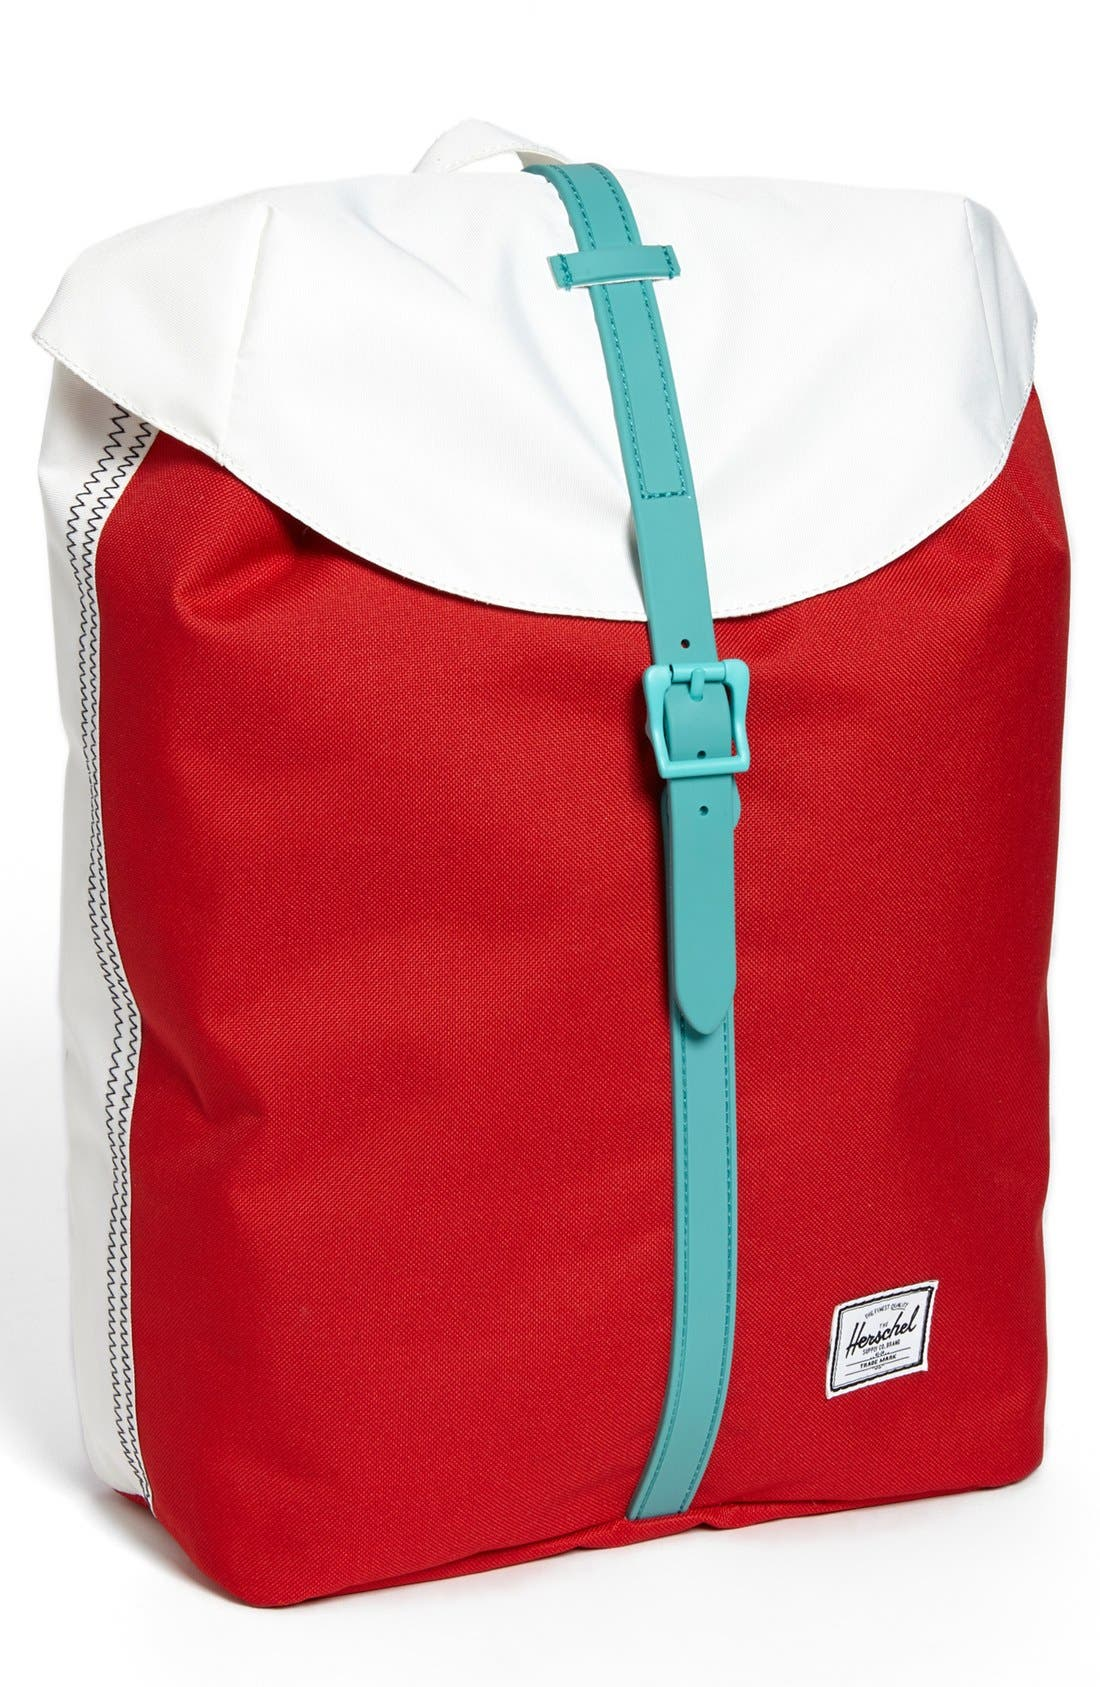 Alternate Image 1 Selected - Herschel Supply Co. 'Post - Studio Collection' Backpack